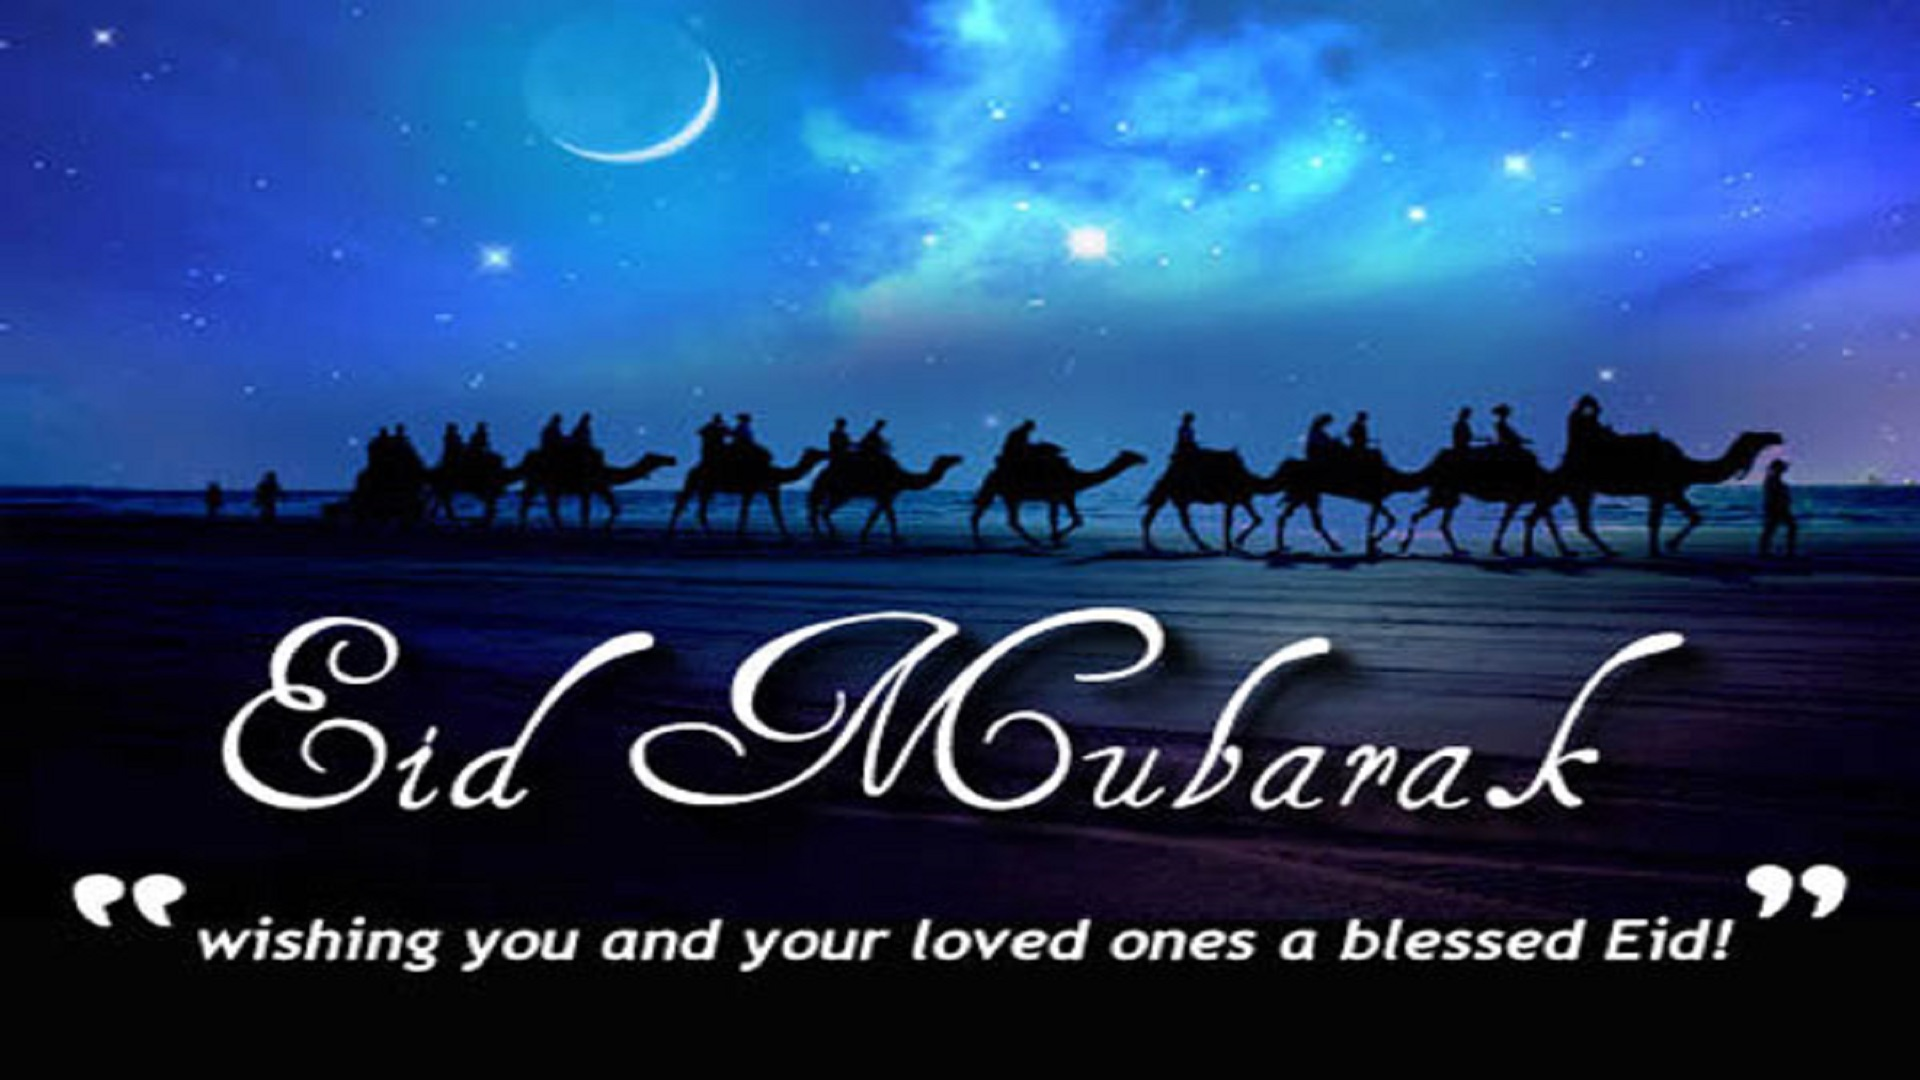 Eid Ul Fitr Wallpapers Greetings Free Hd